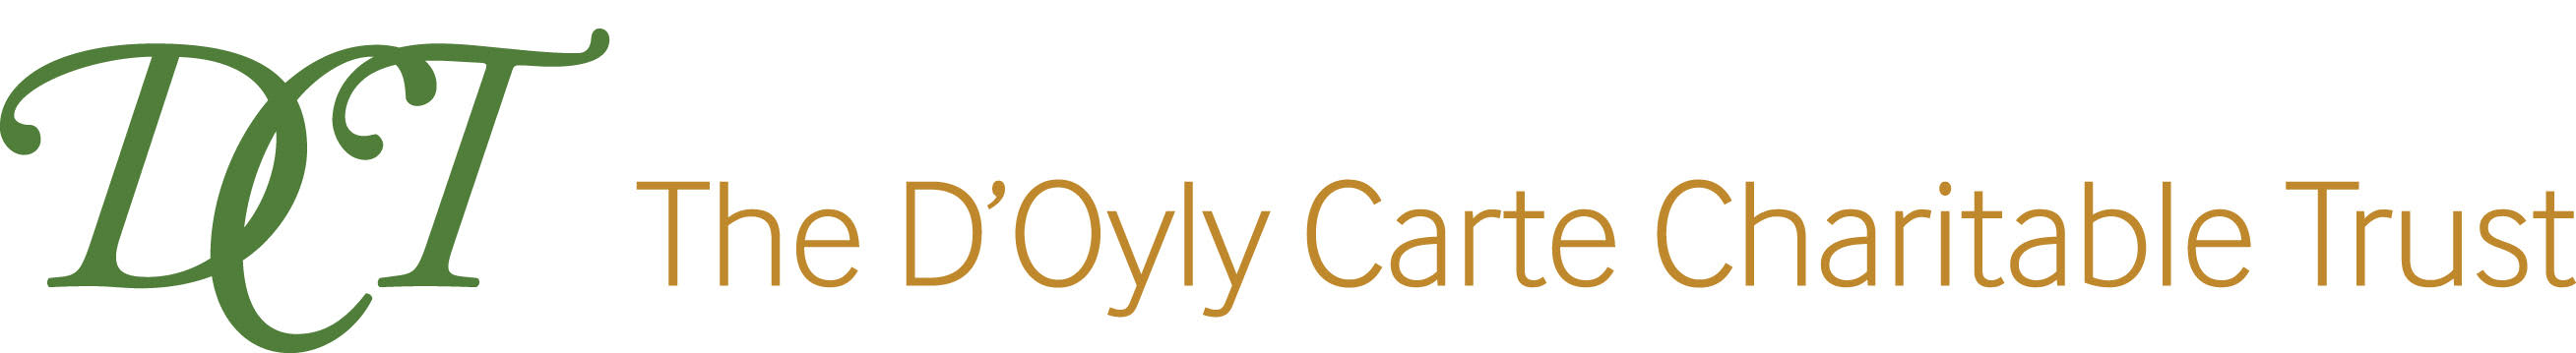 The D'oyly Carte Charitable Trust